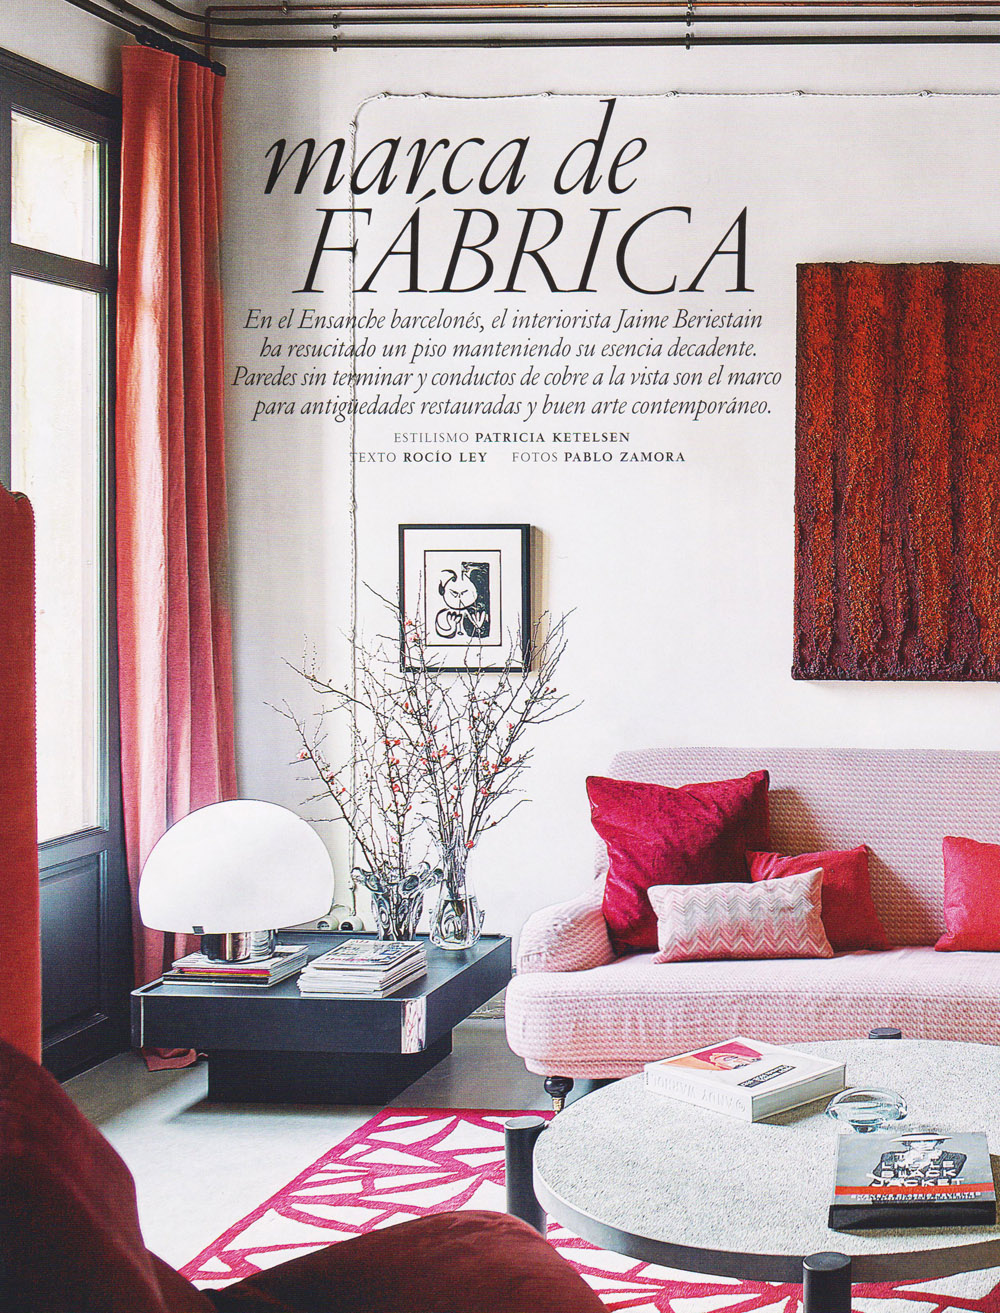 Reprinted from Architectural Digest. Spanish Edition, March 2016